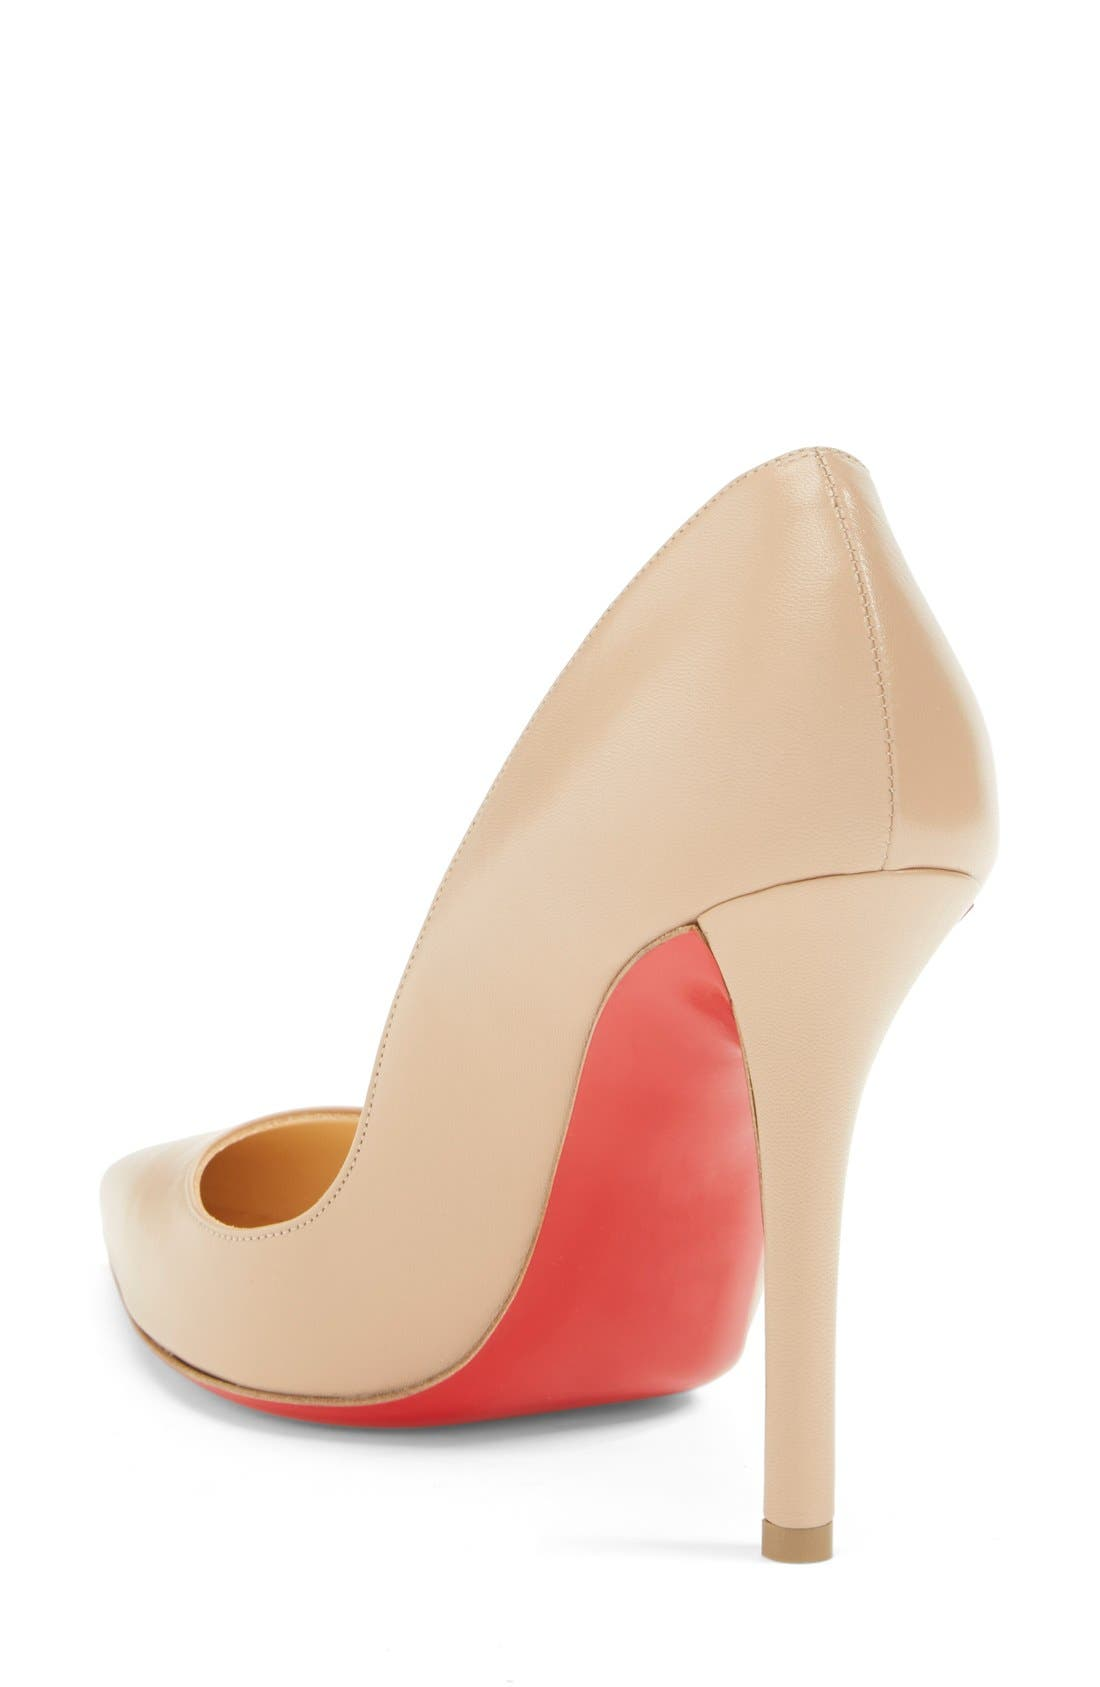 'Apostrophy' Pointy Toe Pump,                             Alternate thumbnail 10, color,